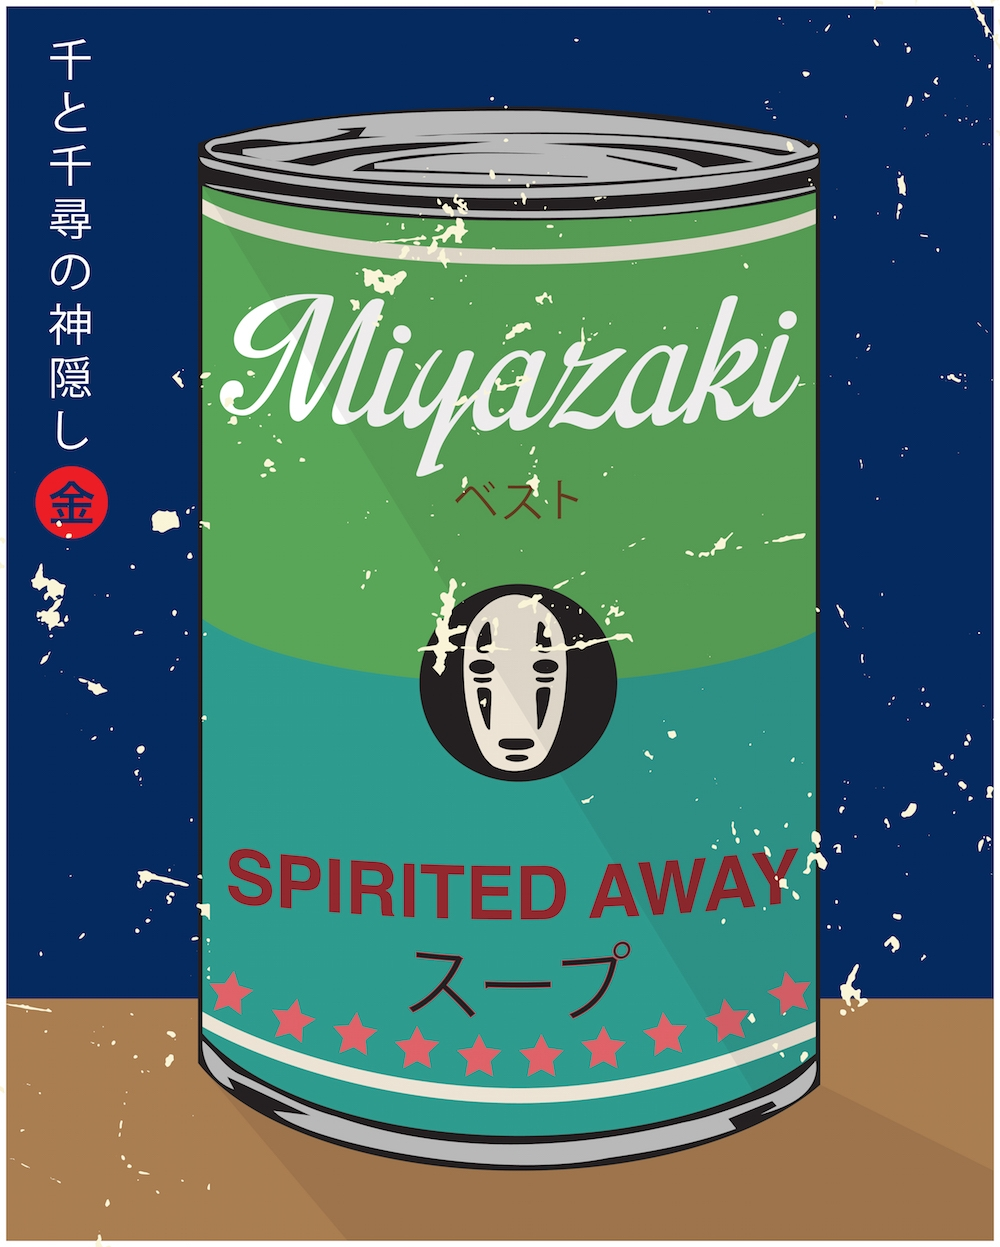 Warhol's soup cans reimagined by Japanese Pop Artist